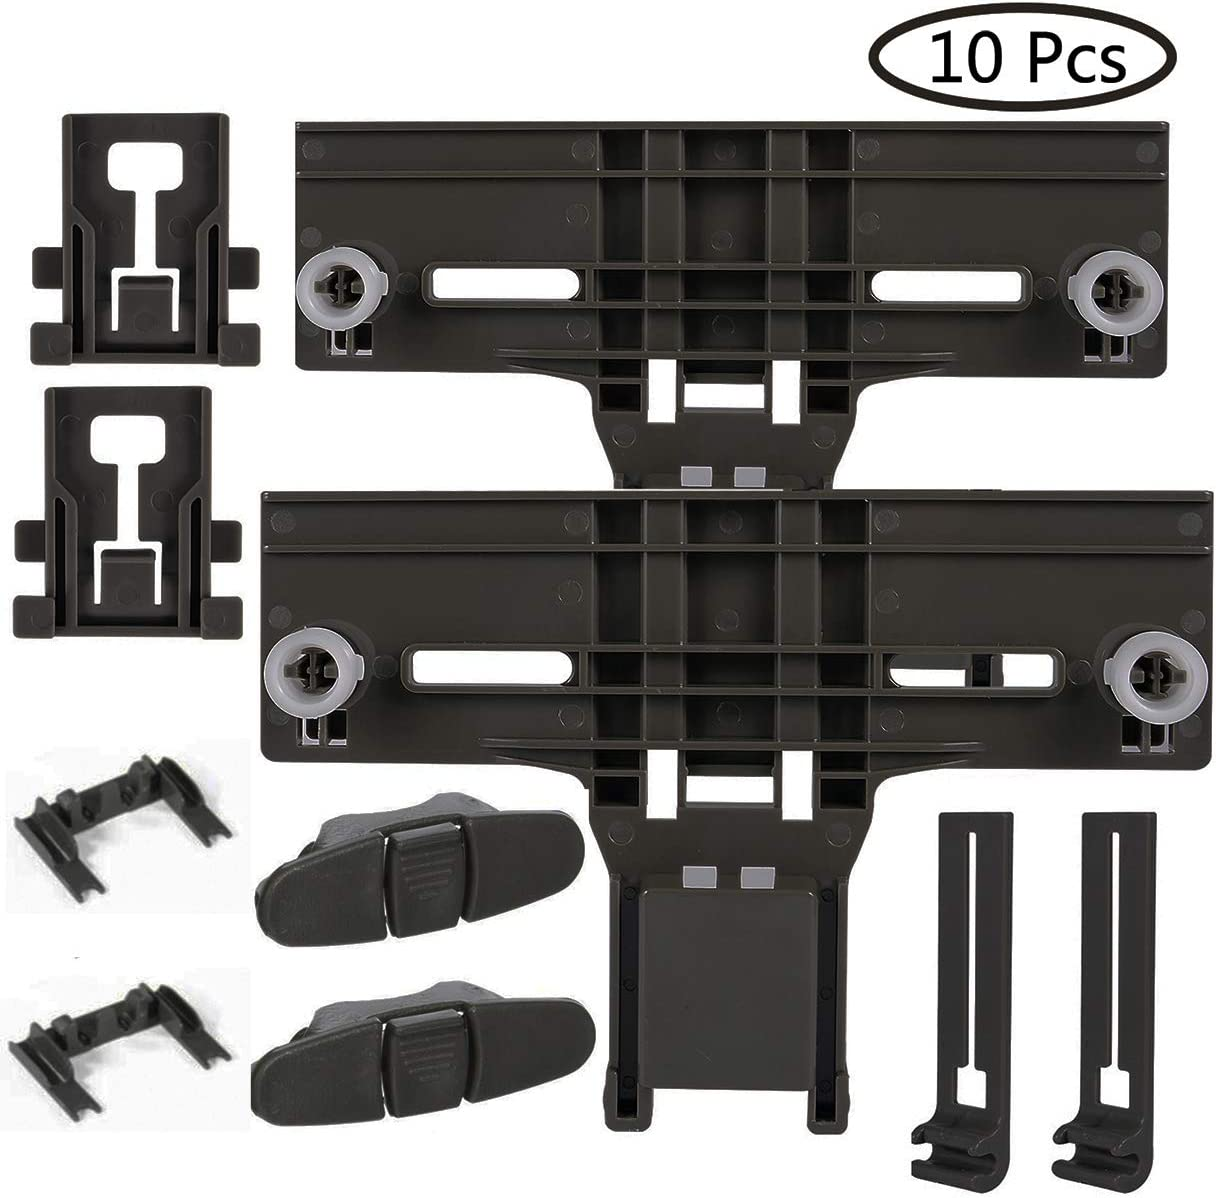 Cykemo W10350376 Dishwasher Top Rack Adjuster W10195840 & W10195839 &W10250160&W10508950 Replacement Kit for Whirlpool Kenmore,High Durable